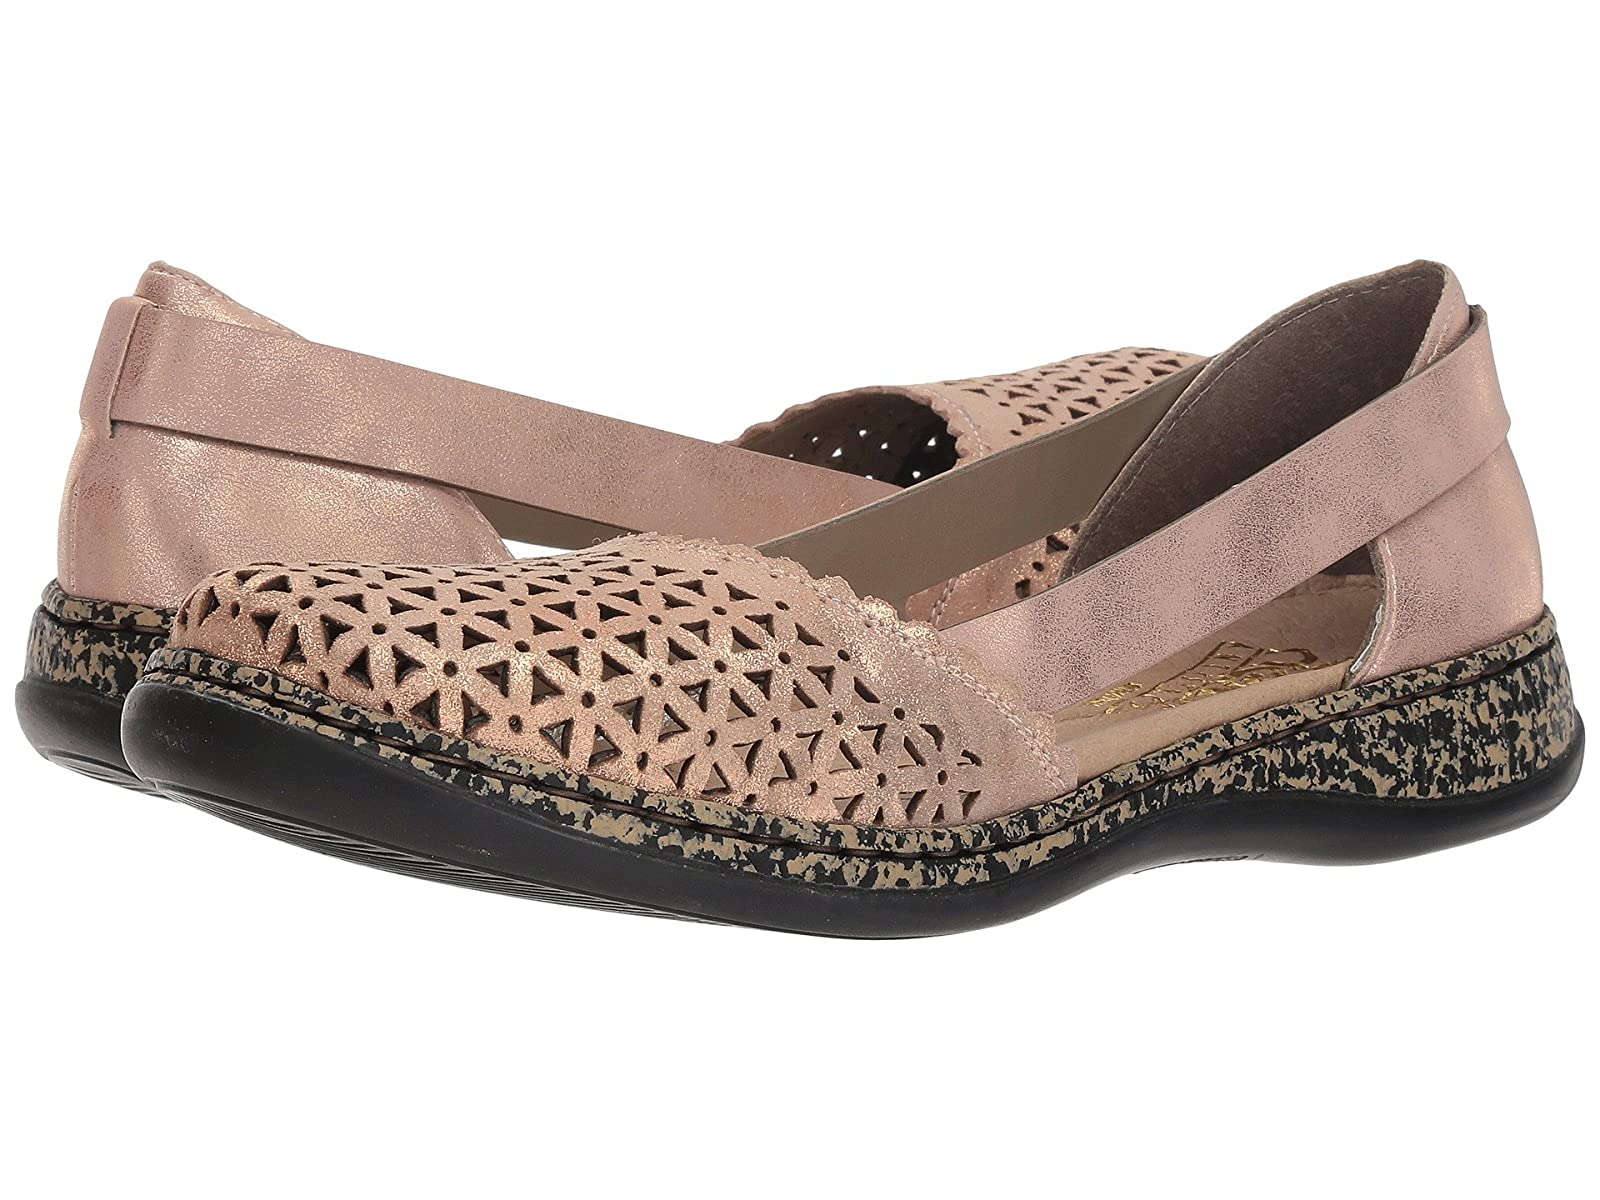 Rieker 46387 Daisy 87Atmospheric grades have affordable shoes